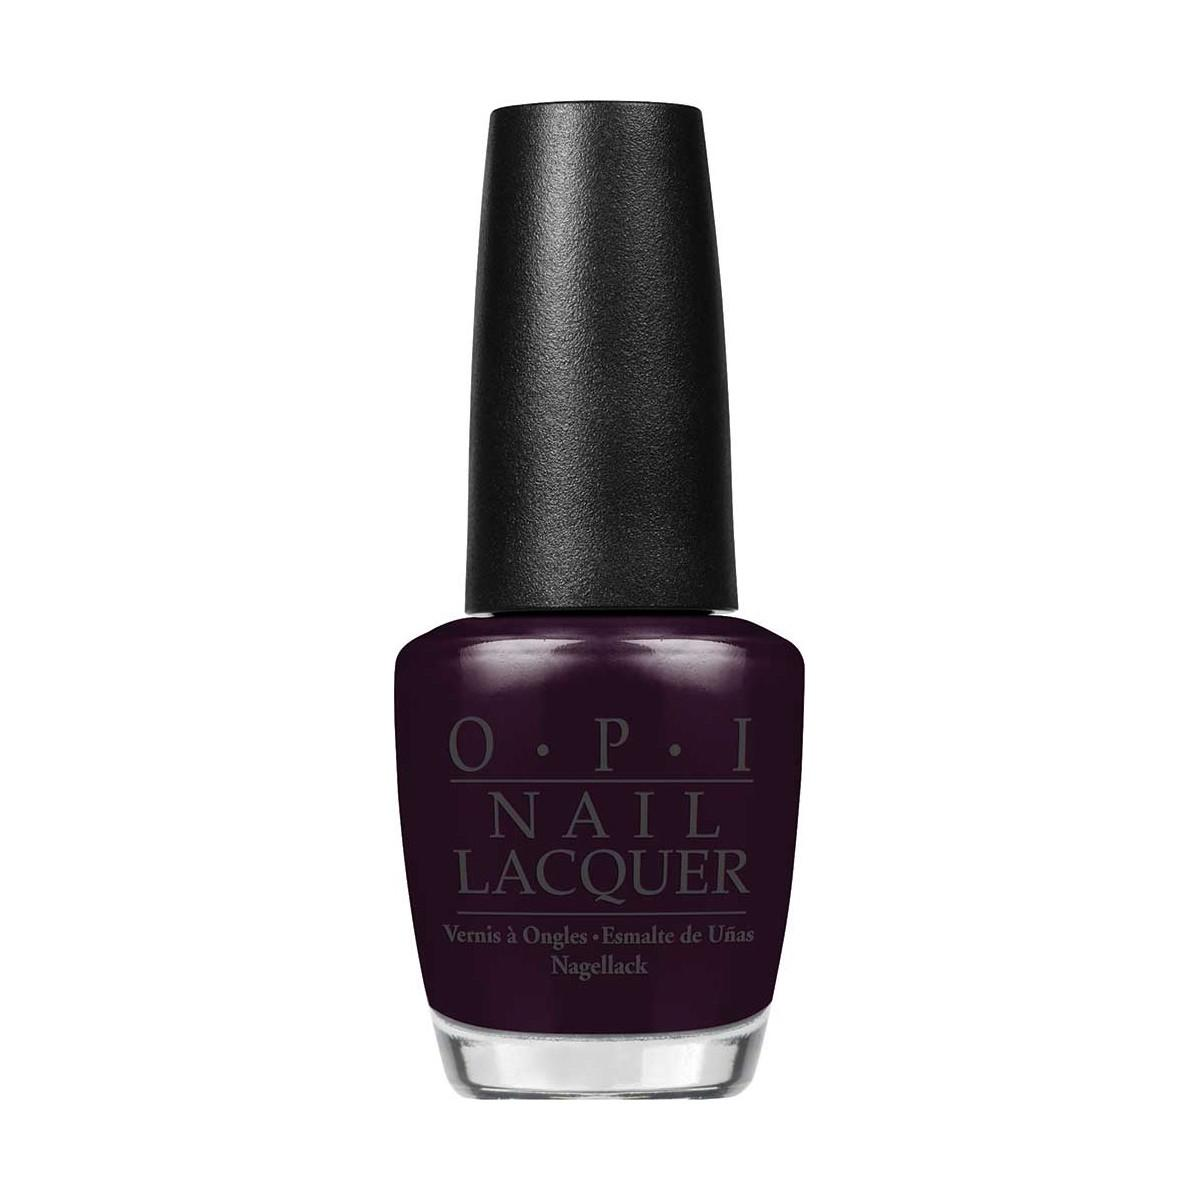 Opi fragrances Nail Lacquer Nlw42 Lincoln Park After Dark